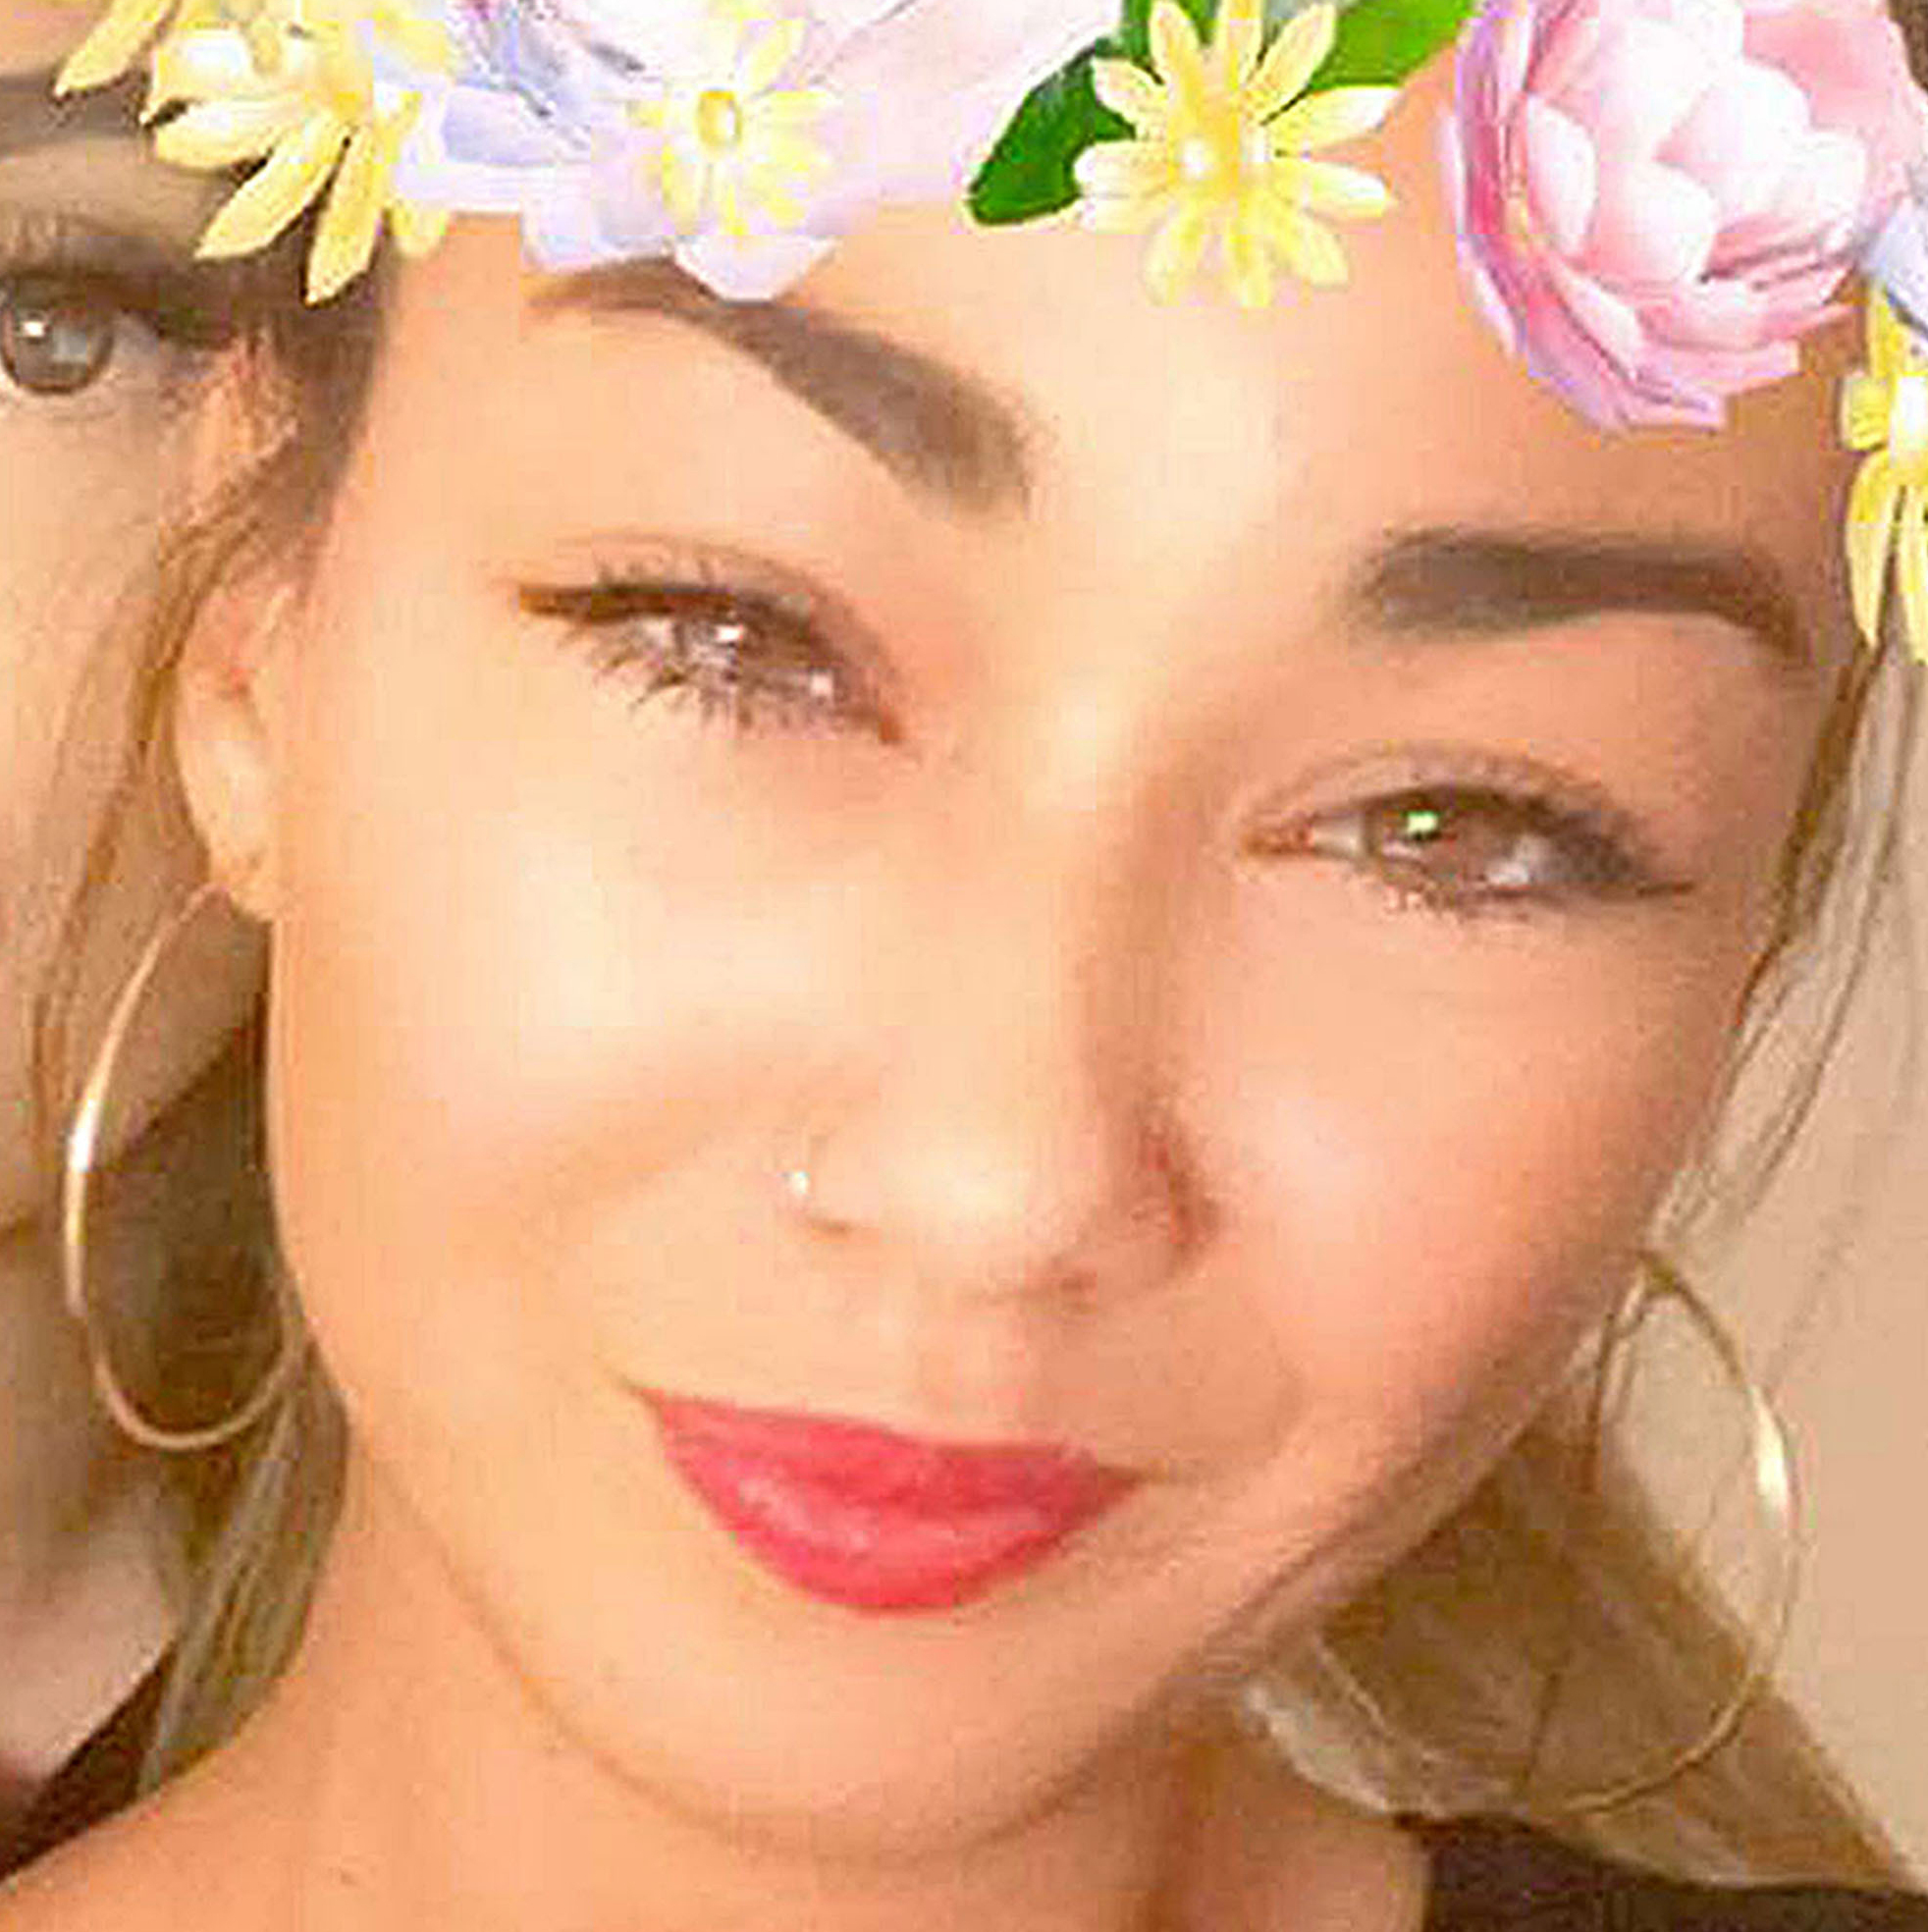 Mia Ayliffe-Chung, from Derbyshire, was killed in the knife attack